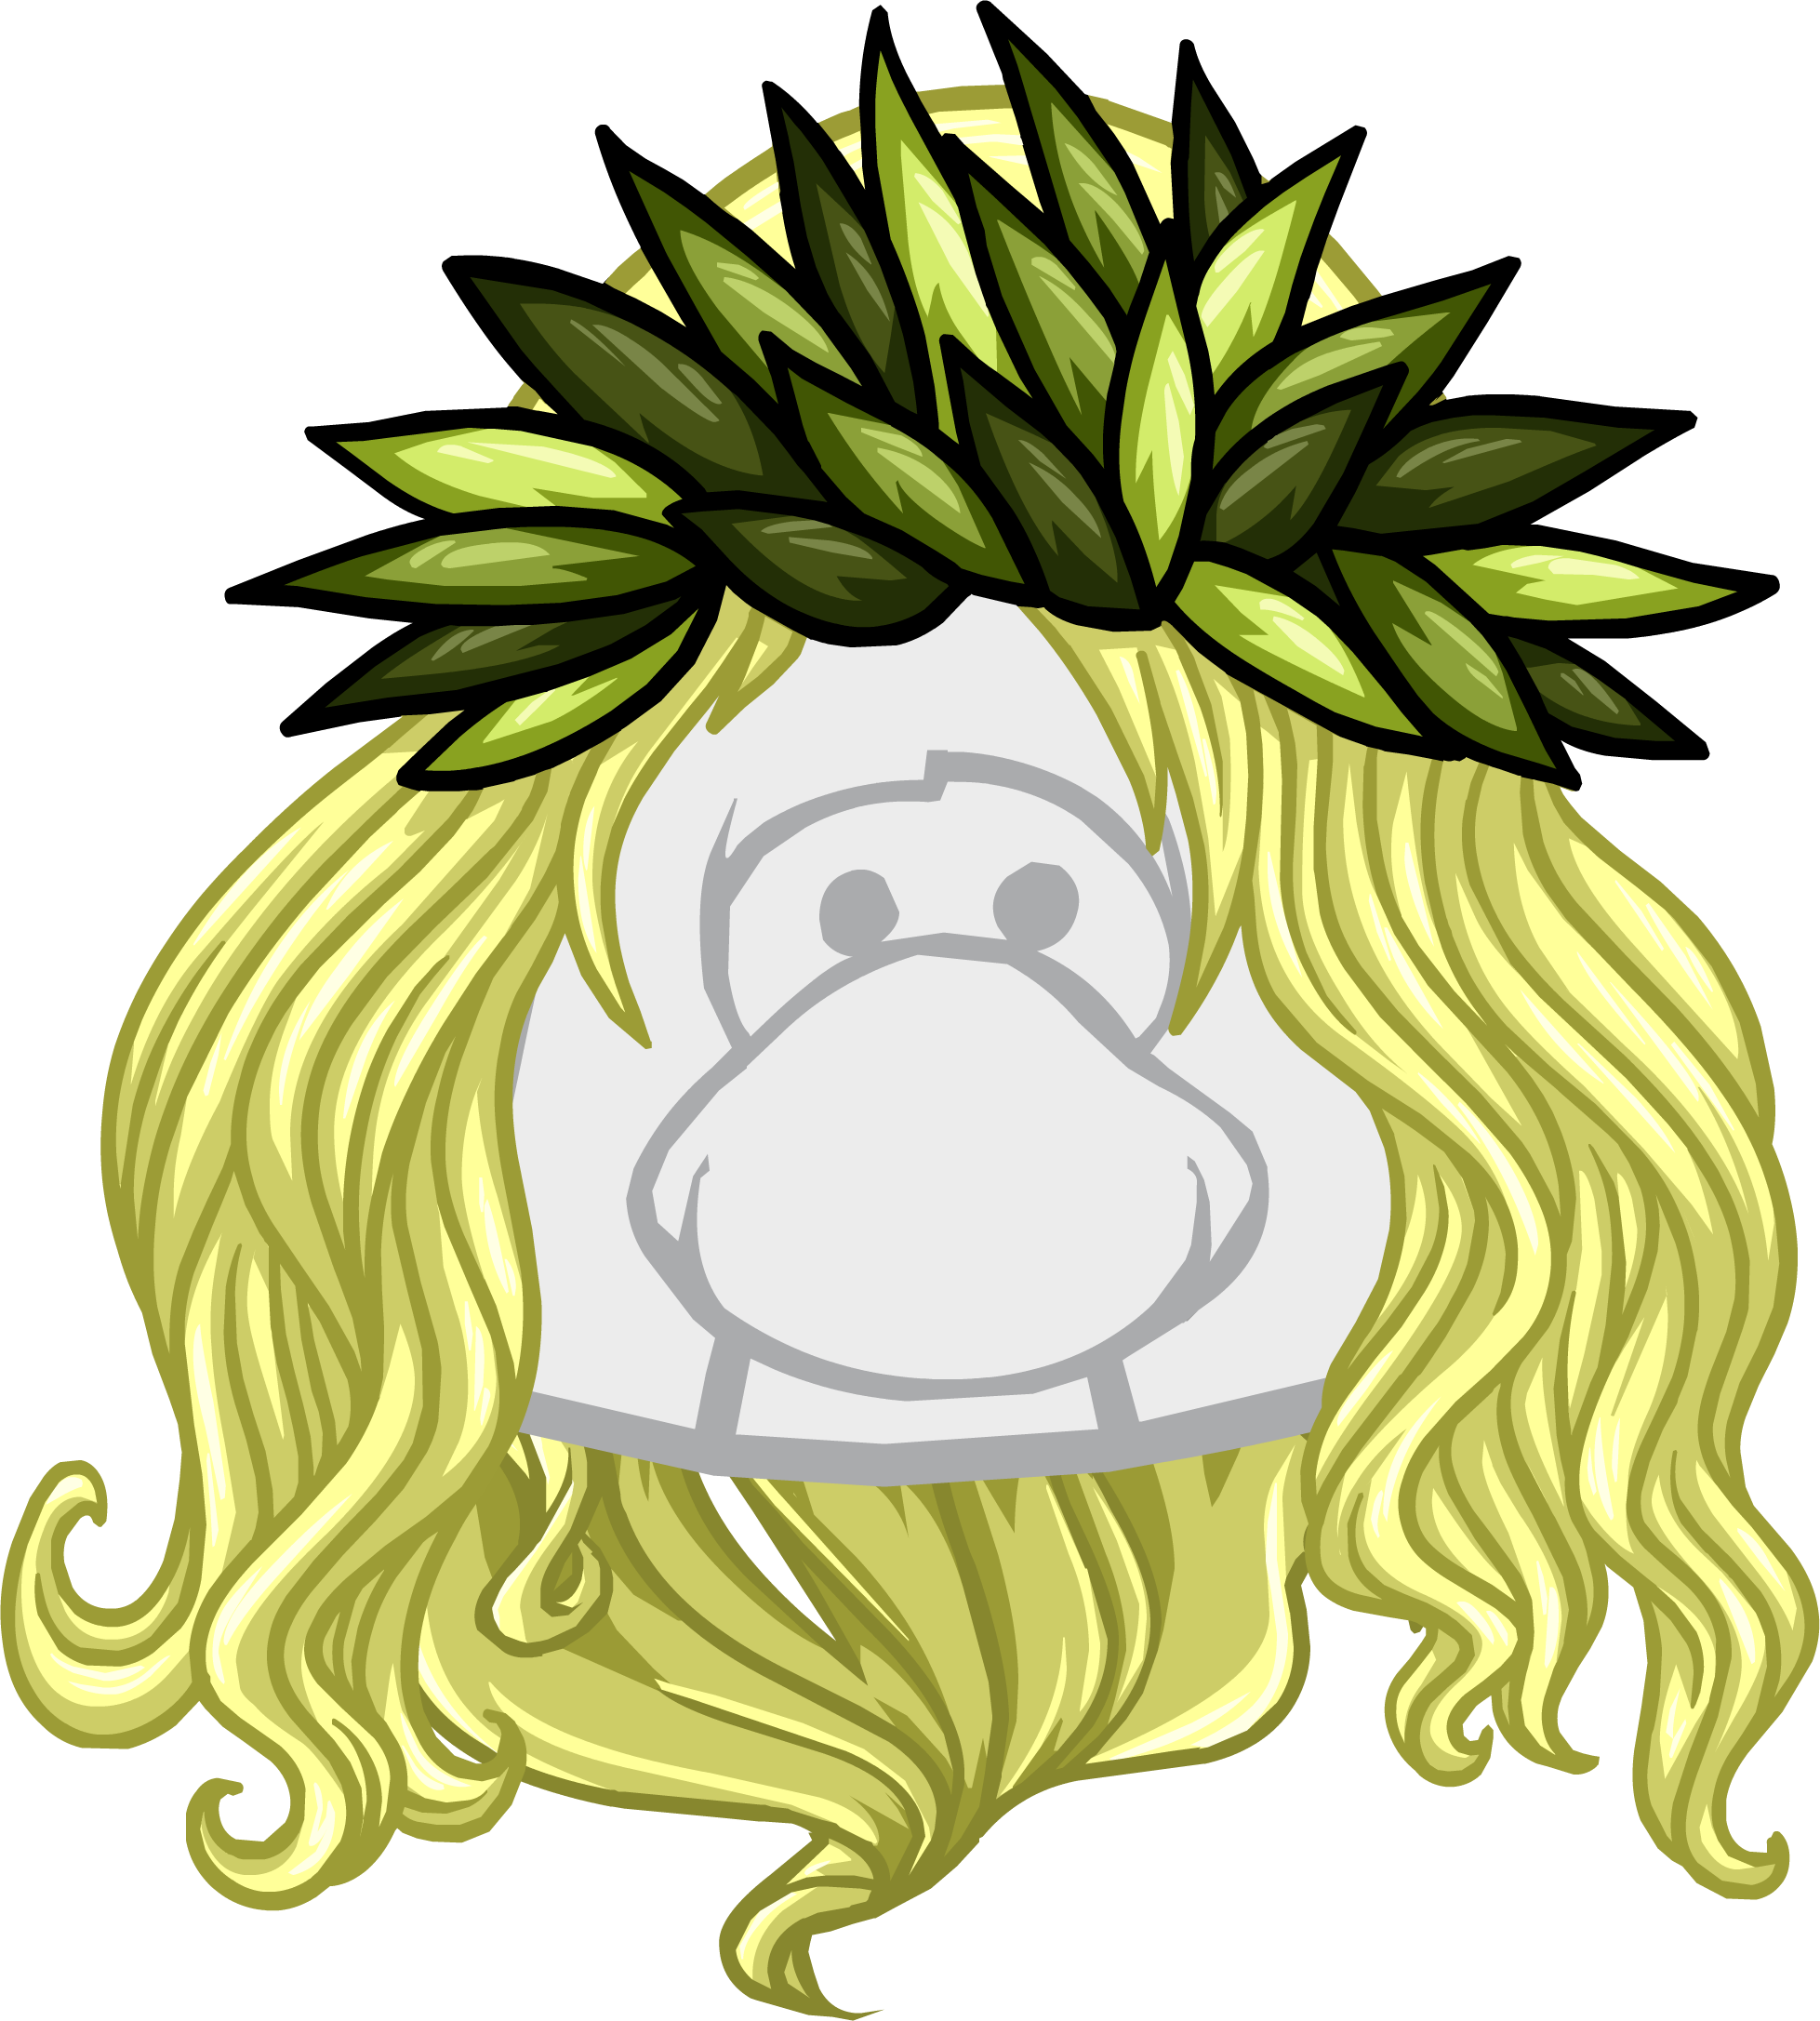 Pineapple clipart crown picture royalty free stock The Pineapple Crown | Club Penguin Wiki | FANDOM powered by Wikia picture royalty free stock